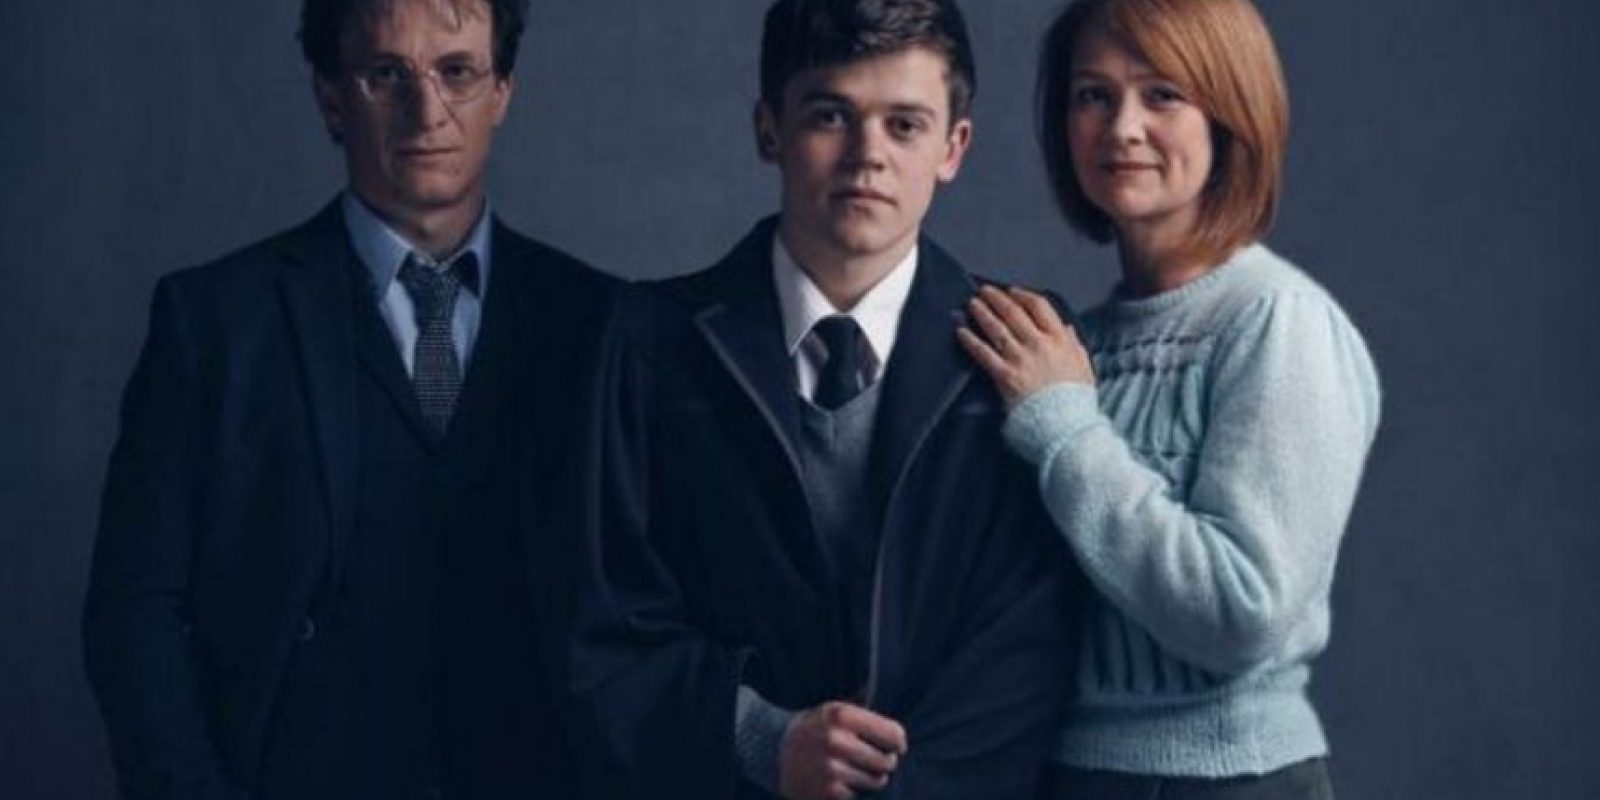 Harry, Albus Severus y Ginny.  Foto: London Palace Theatre